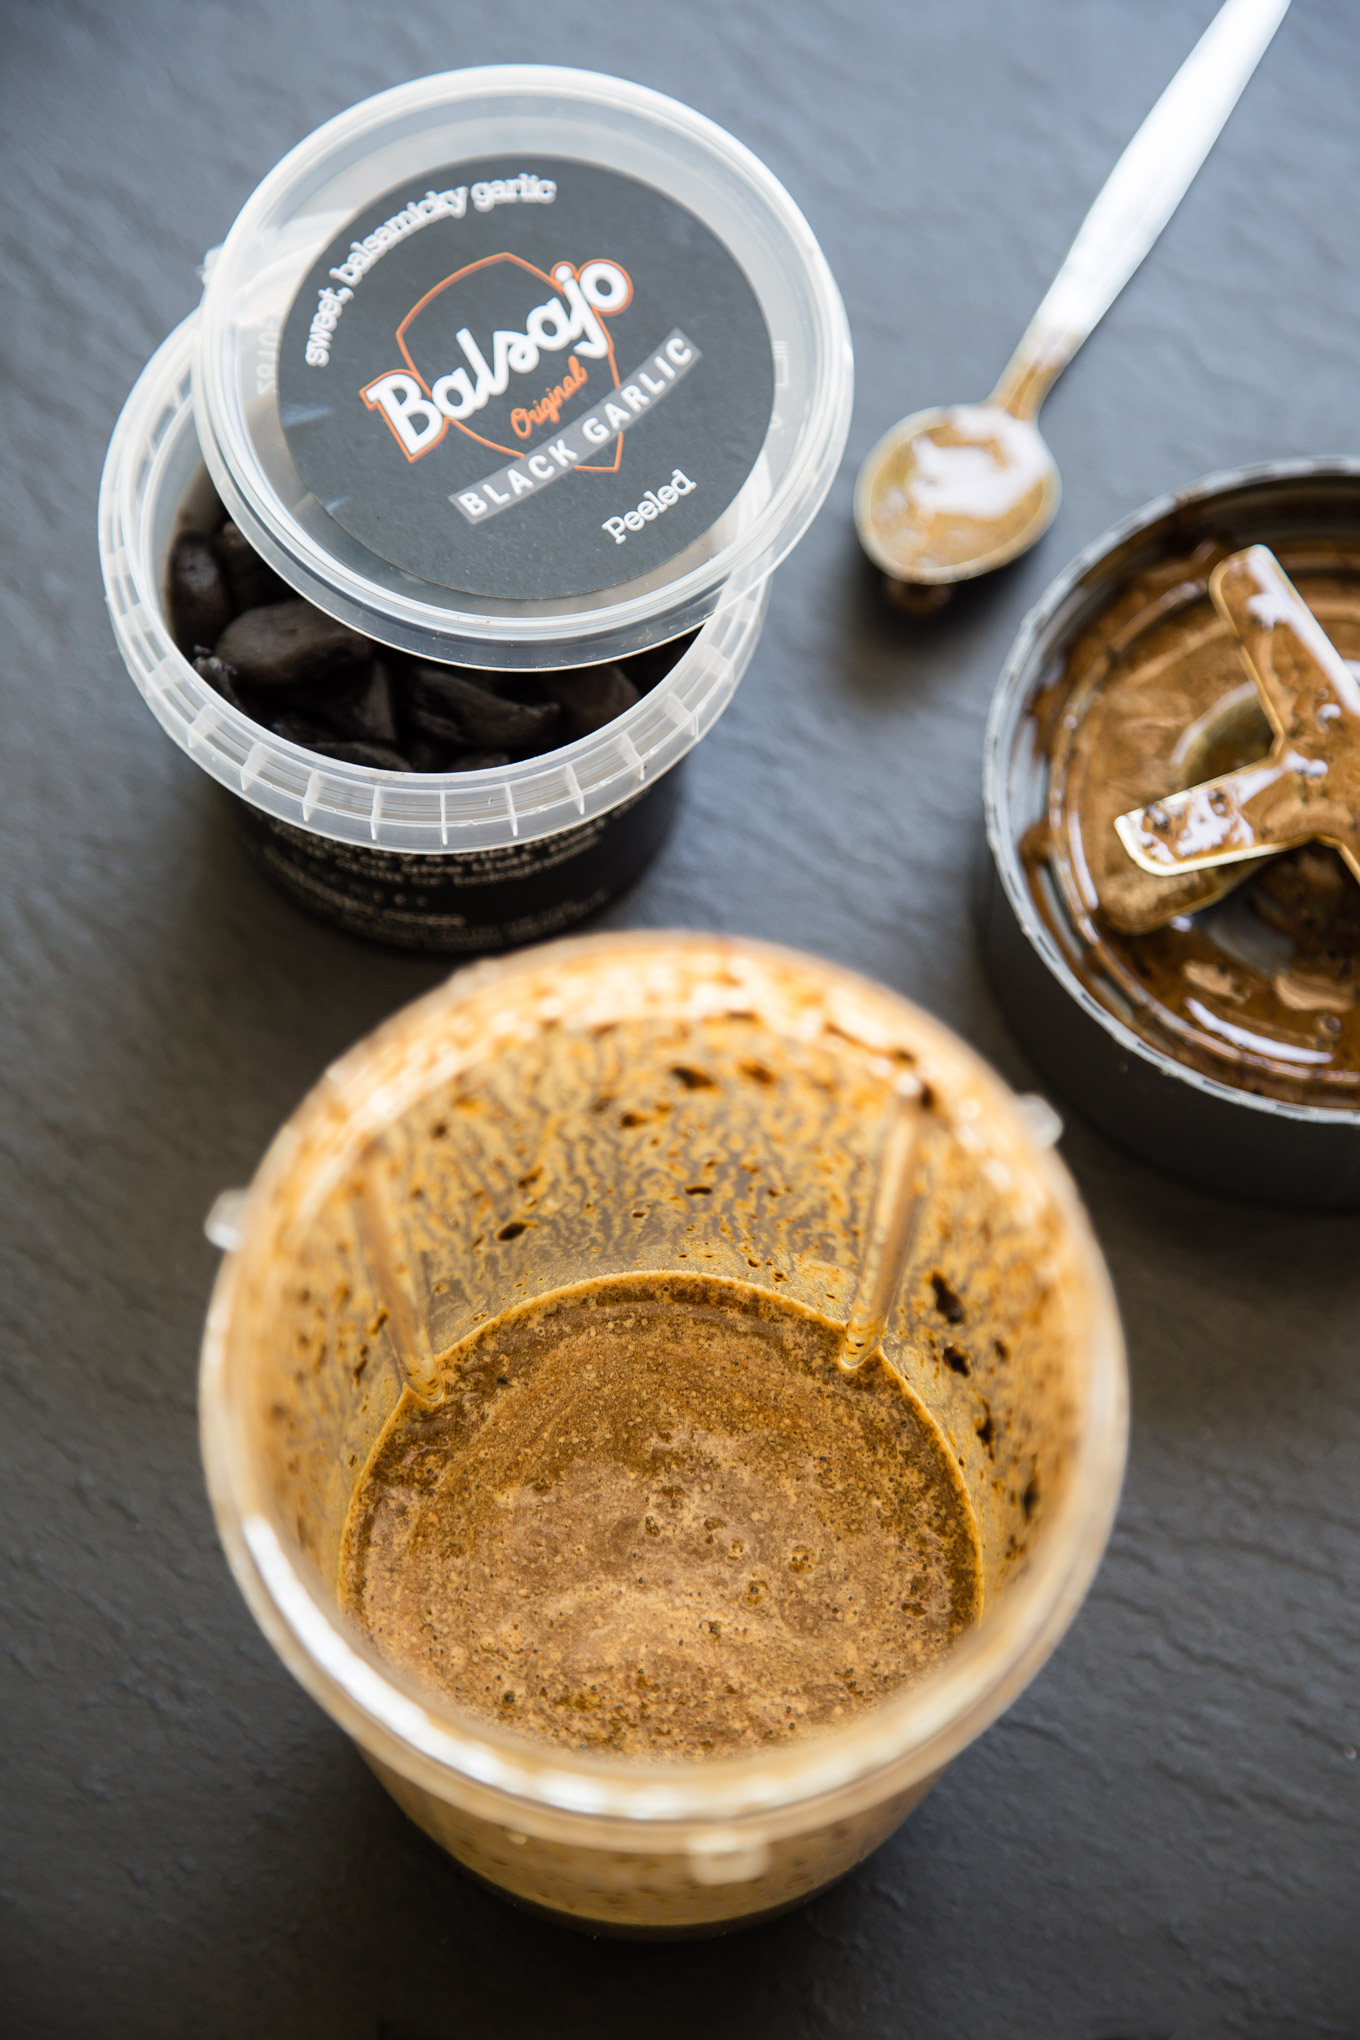 Easy Black Garlic Honey Marinade Sauce Recipe